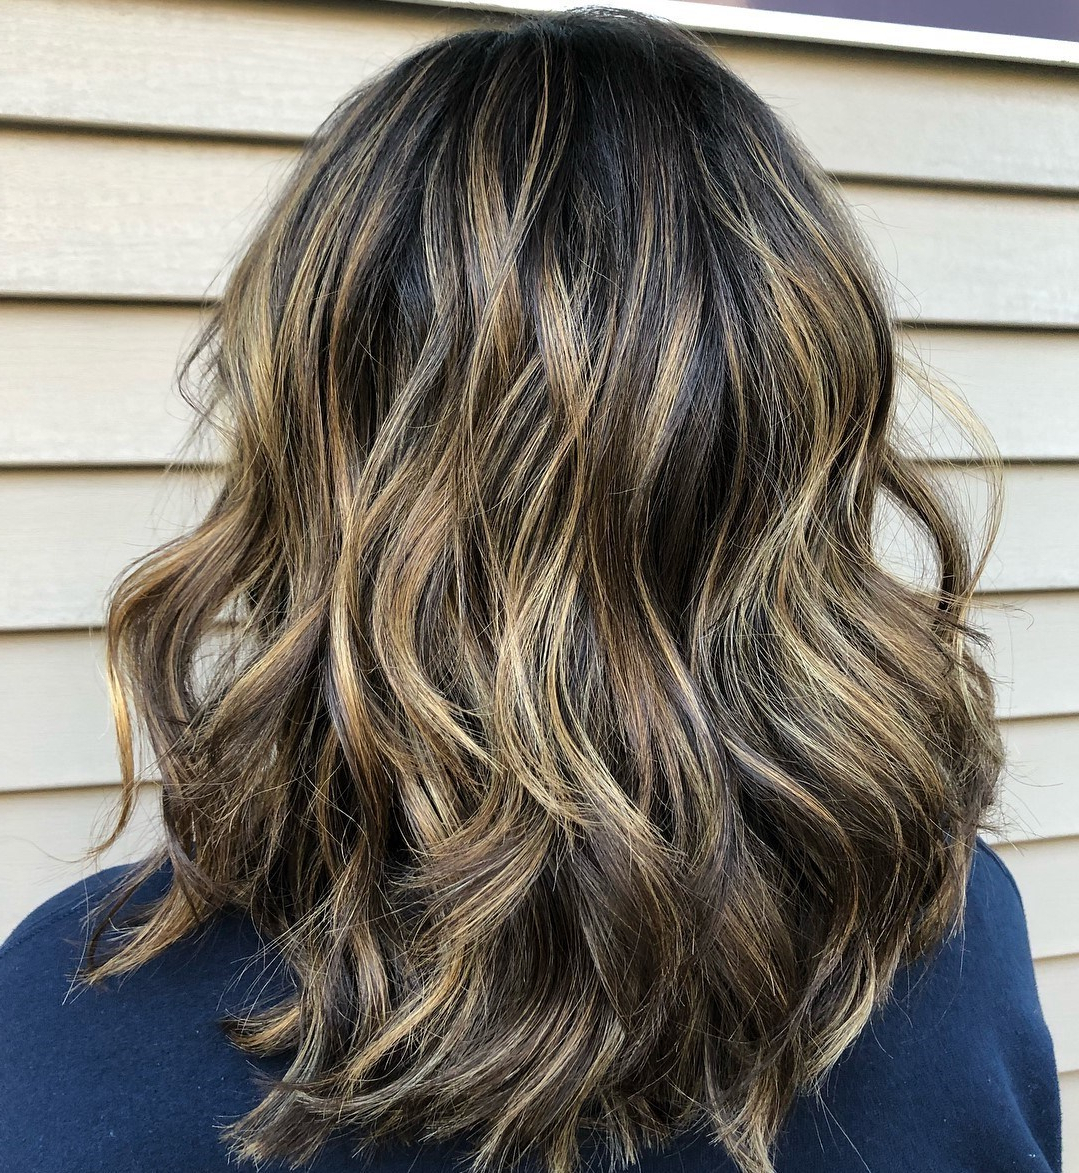 50 Most Flattering Hairstyles For Thick Hair – Hair Adviser For Most Popular Dynamic Feathered Brunette Shag Haircuts (View 6 of 20)